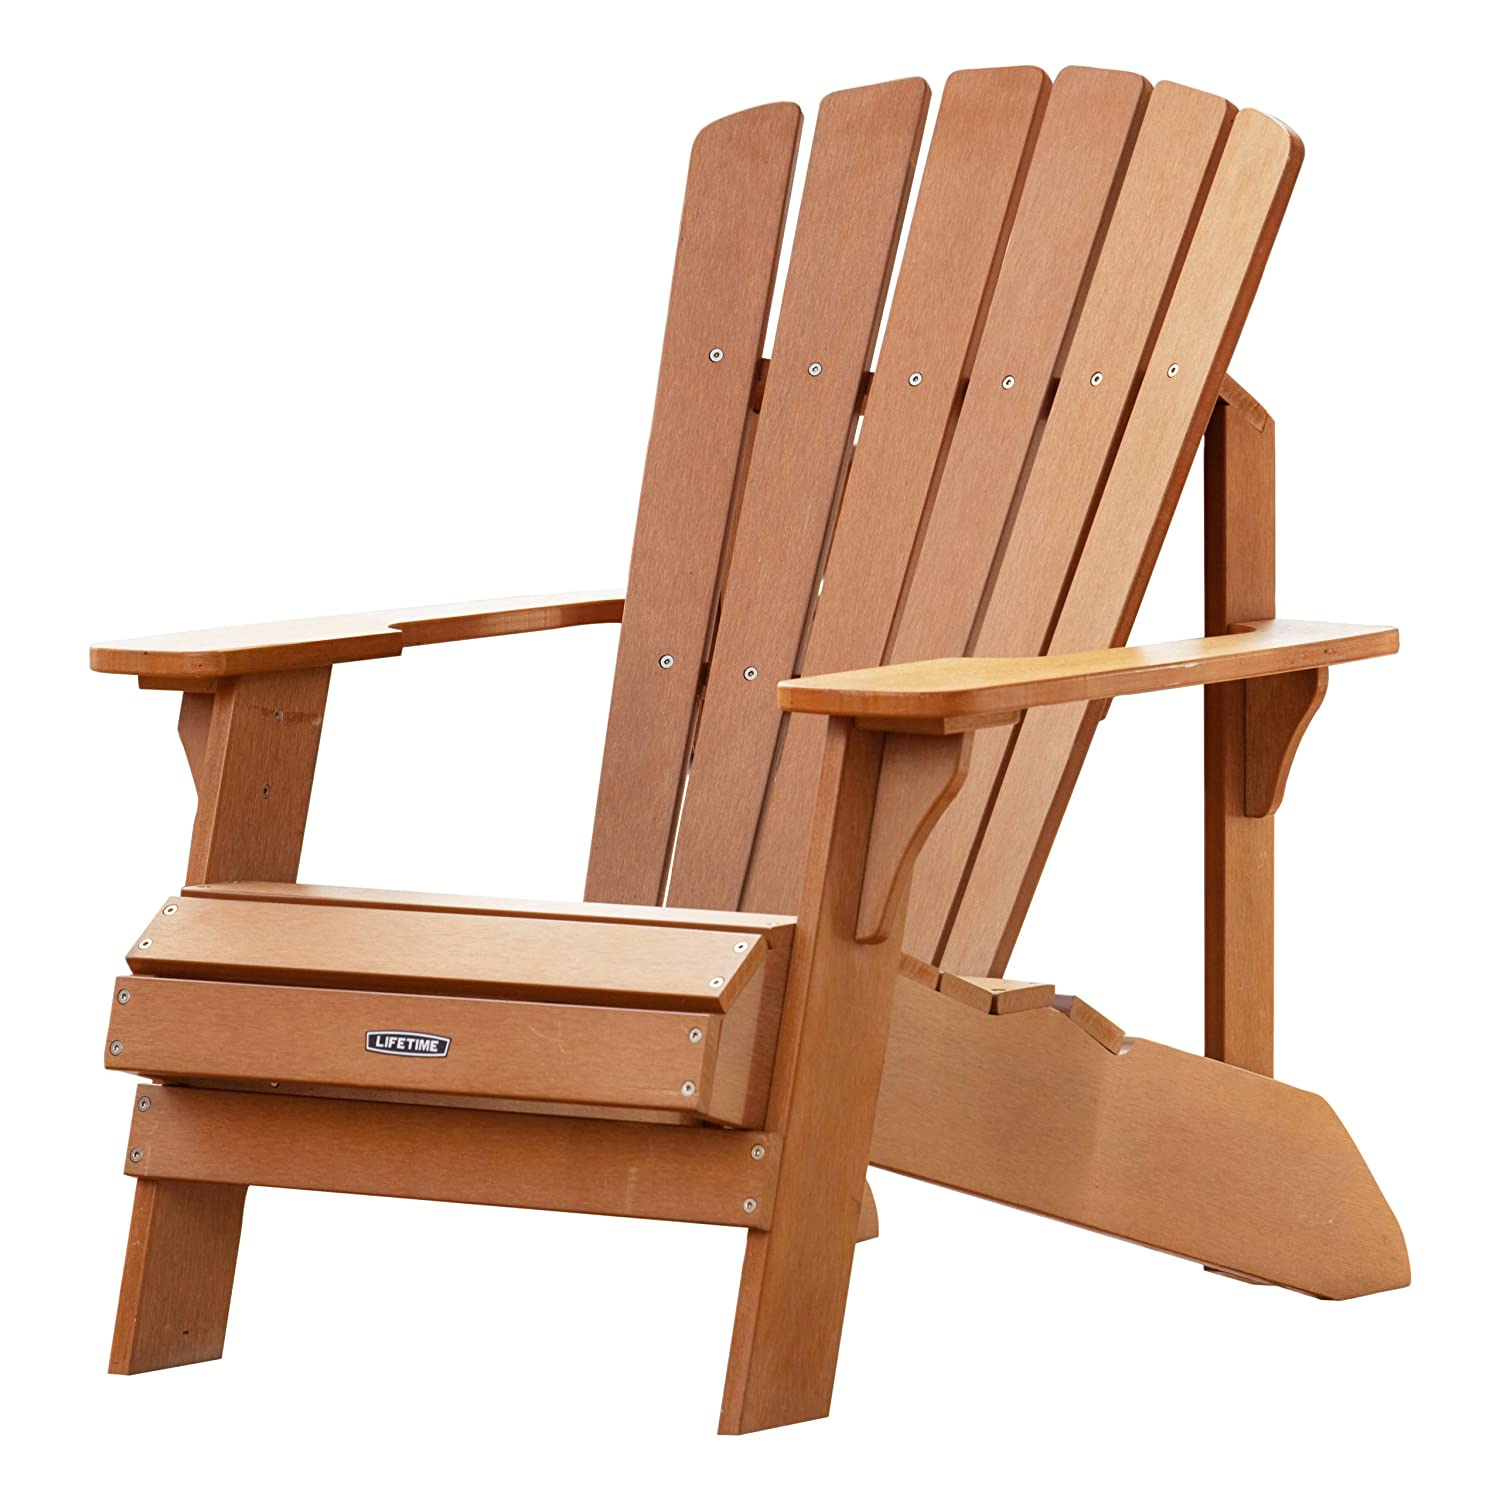 300 Lbs Weight Capacity Adirondack Chair